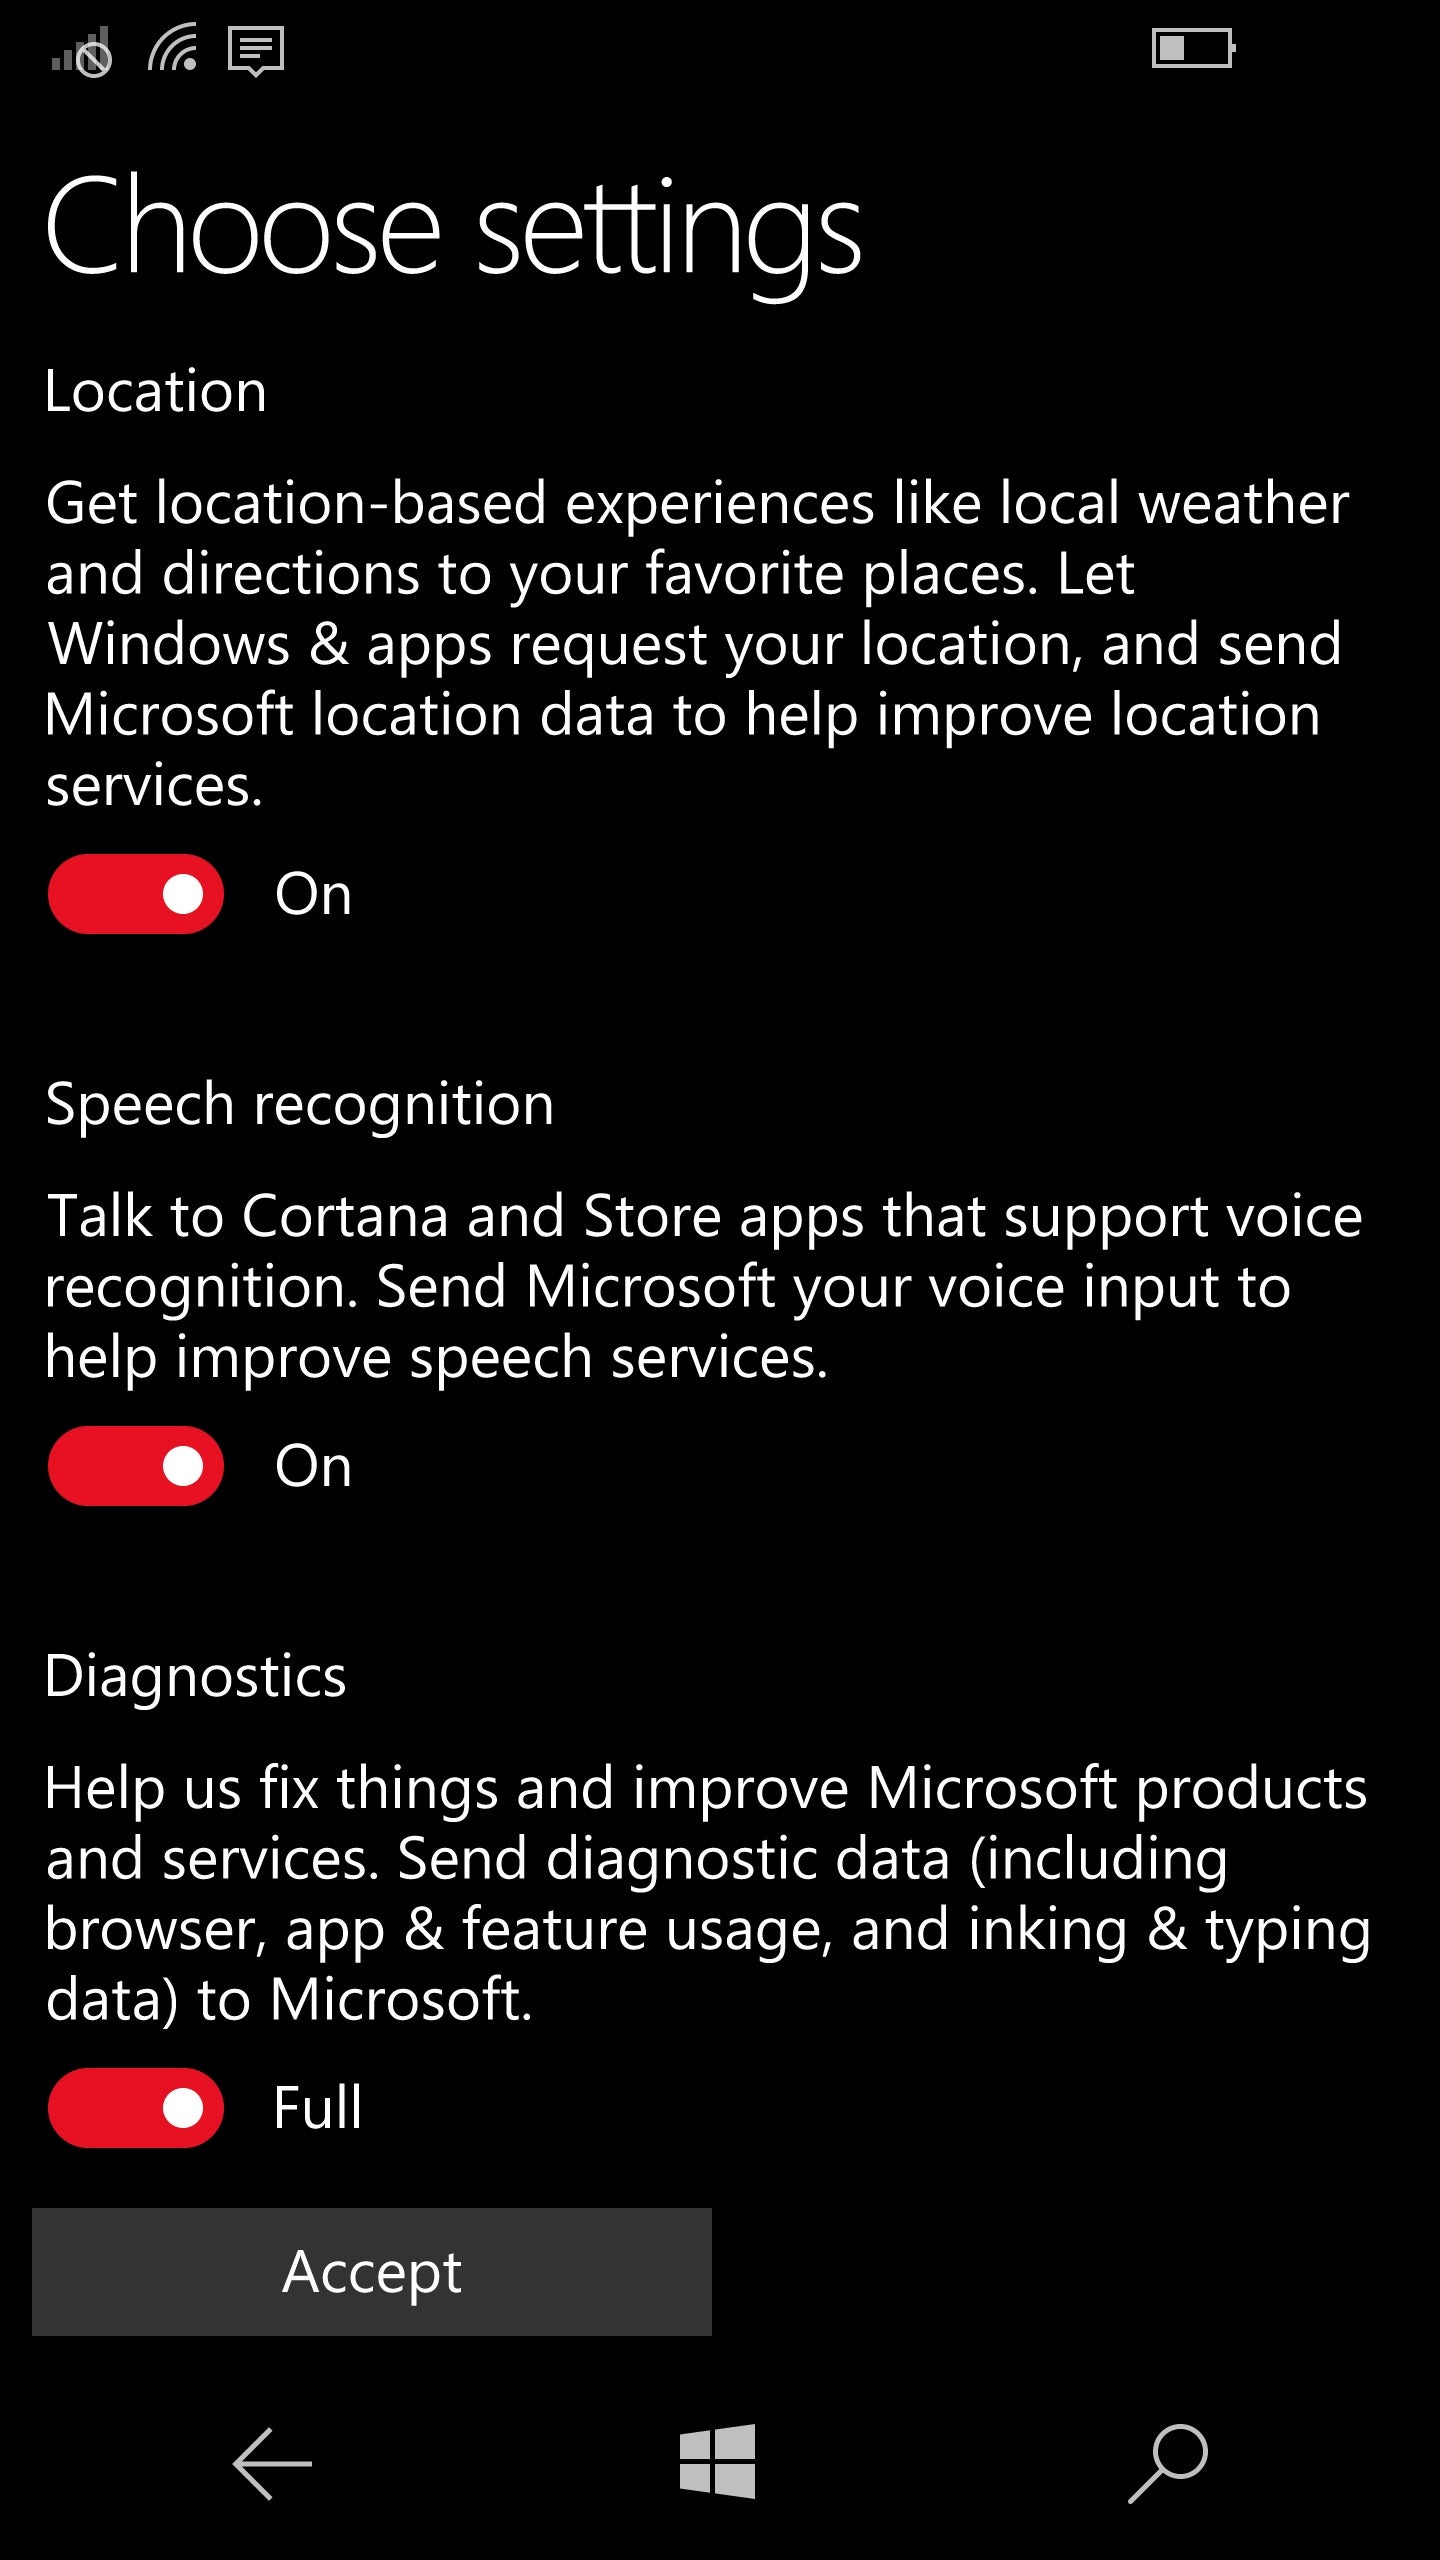 Windows 10 Mobile Creators Update Privacy Settings